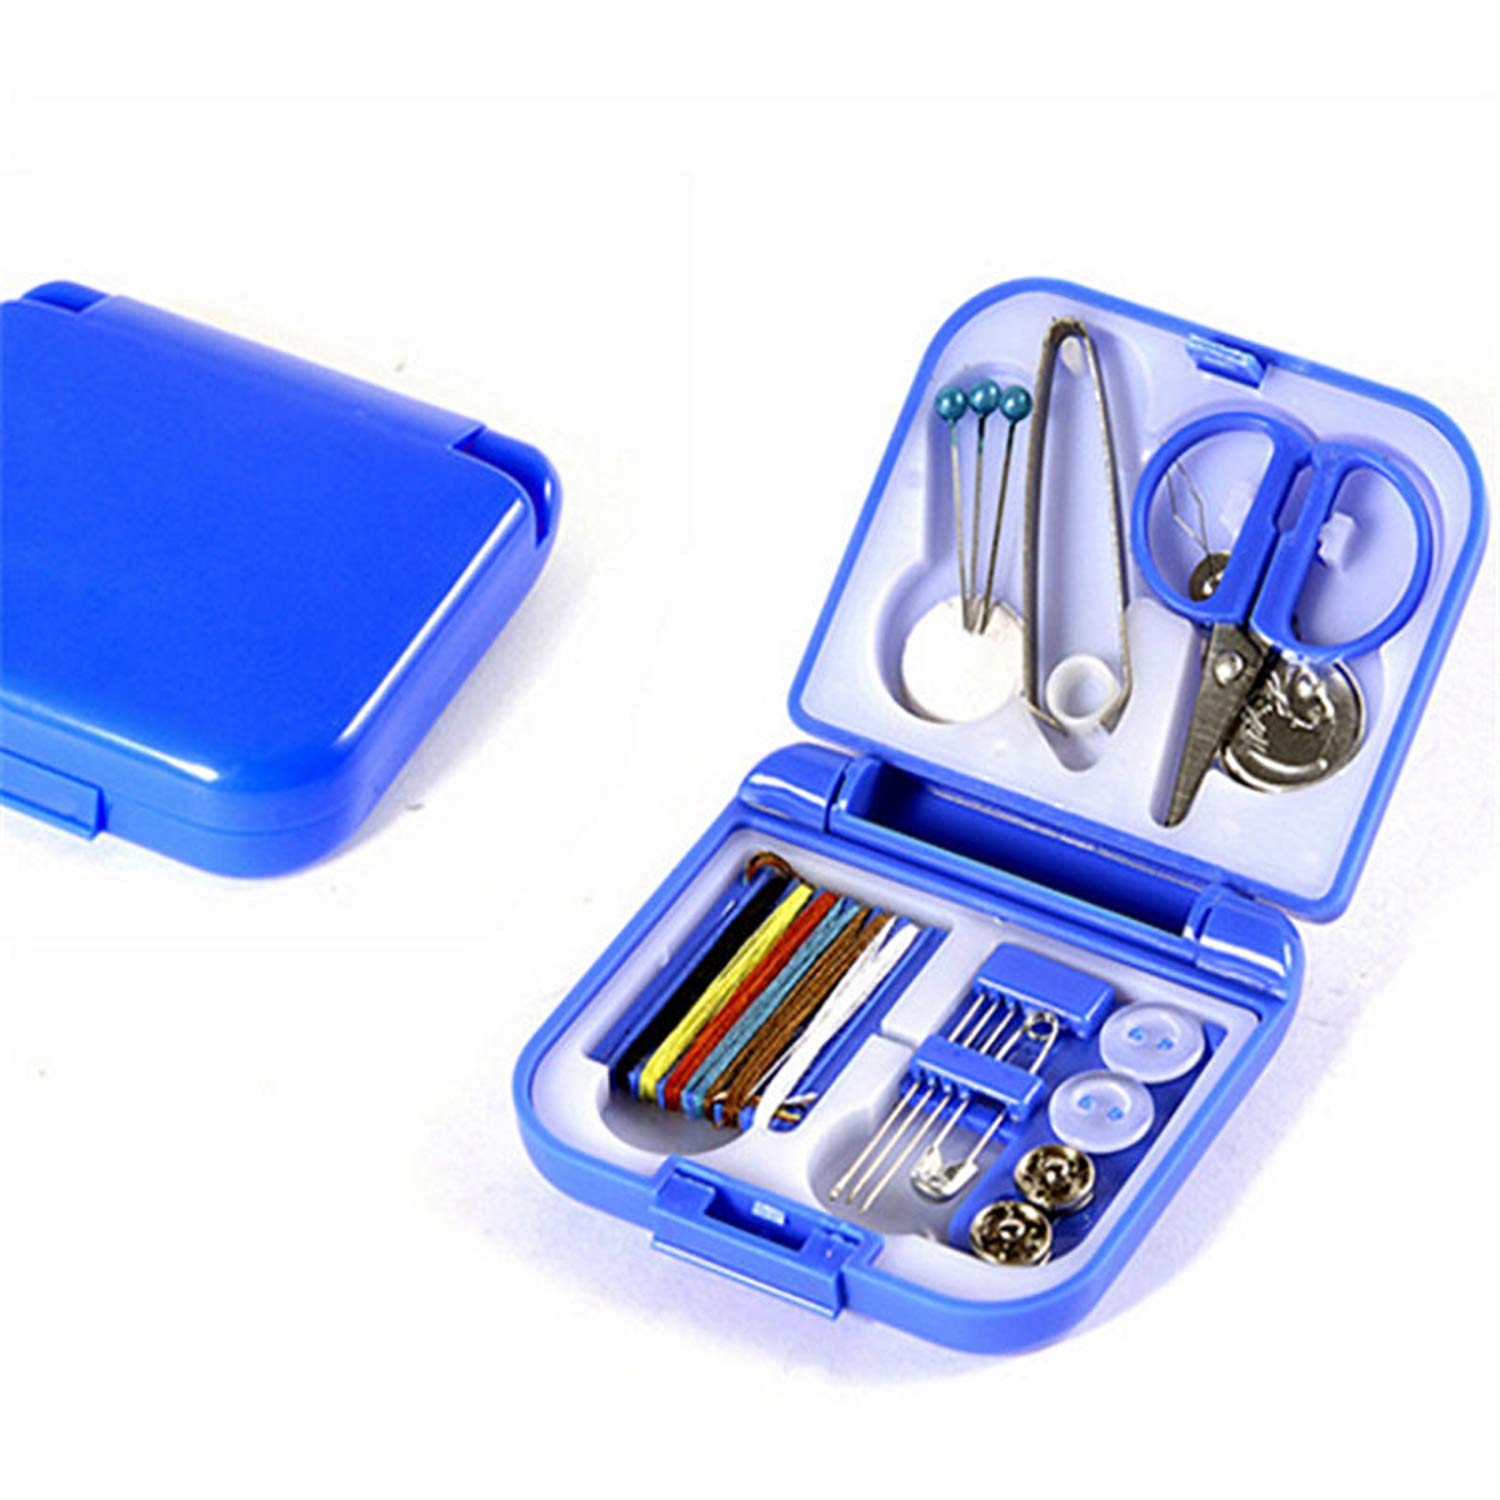 Portable Household Sewing Box,Sewing kit Sewing,eedle and Thread to sew Stitches Hand,Tool Kit (Blue) LJK